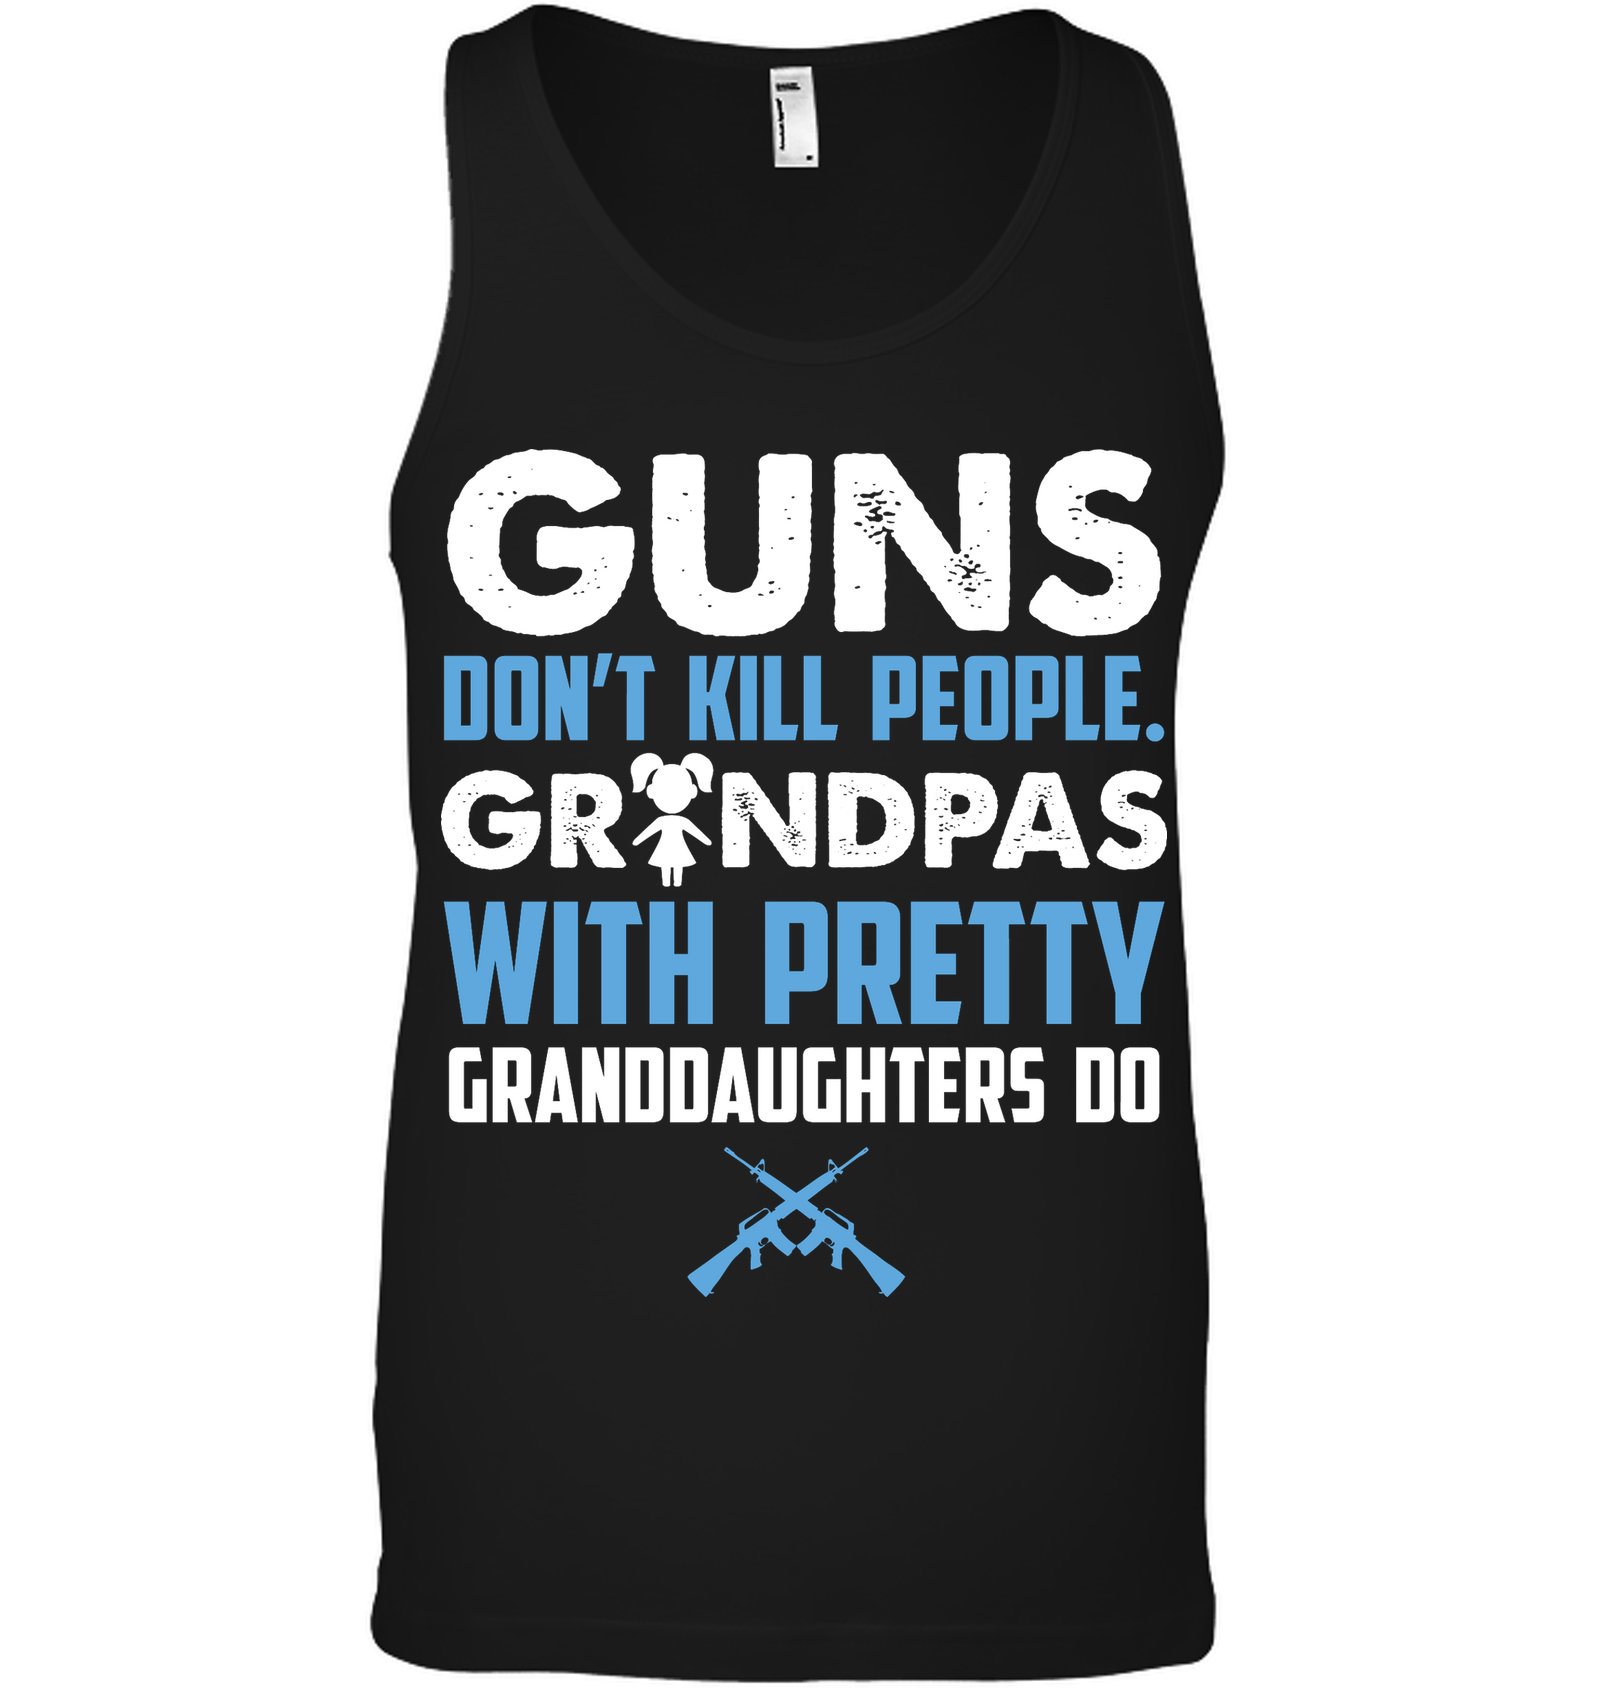 Guns don't kill people, Grandpas with pretty G'daughters do